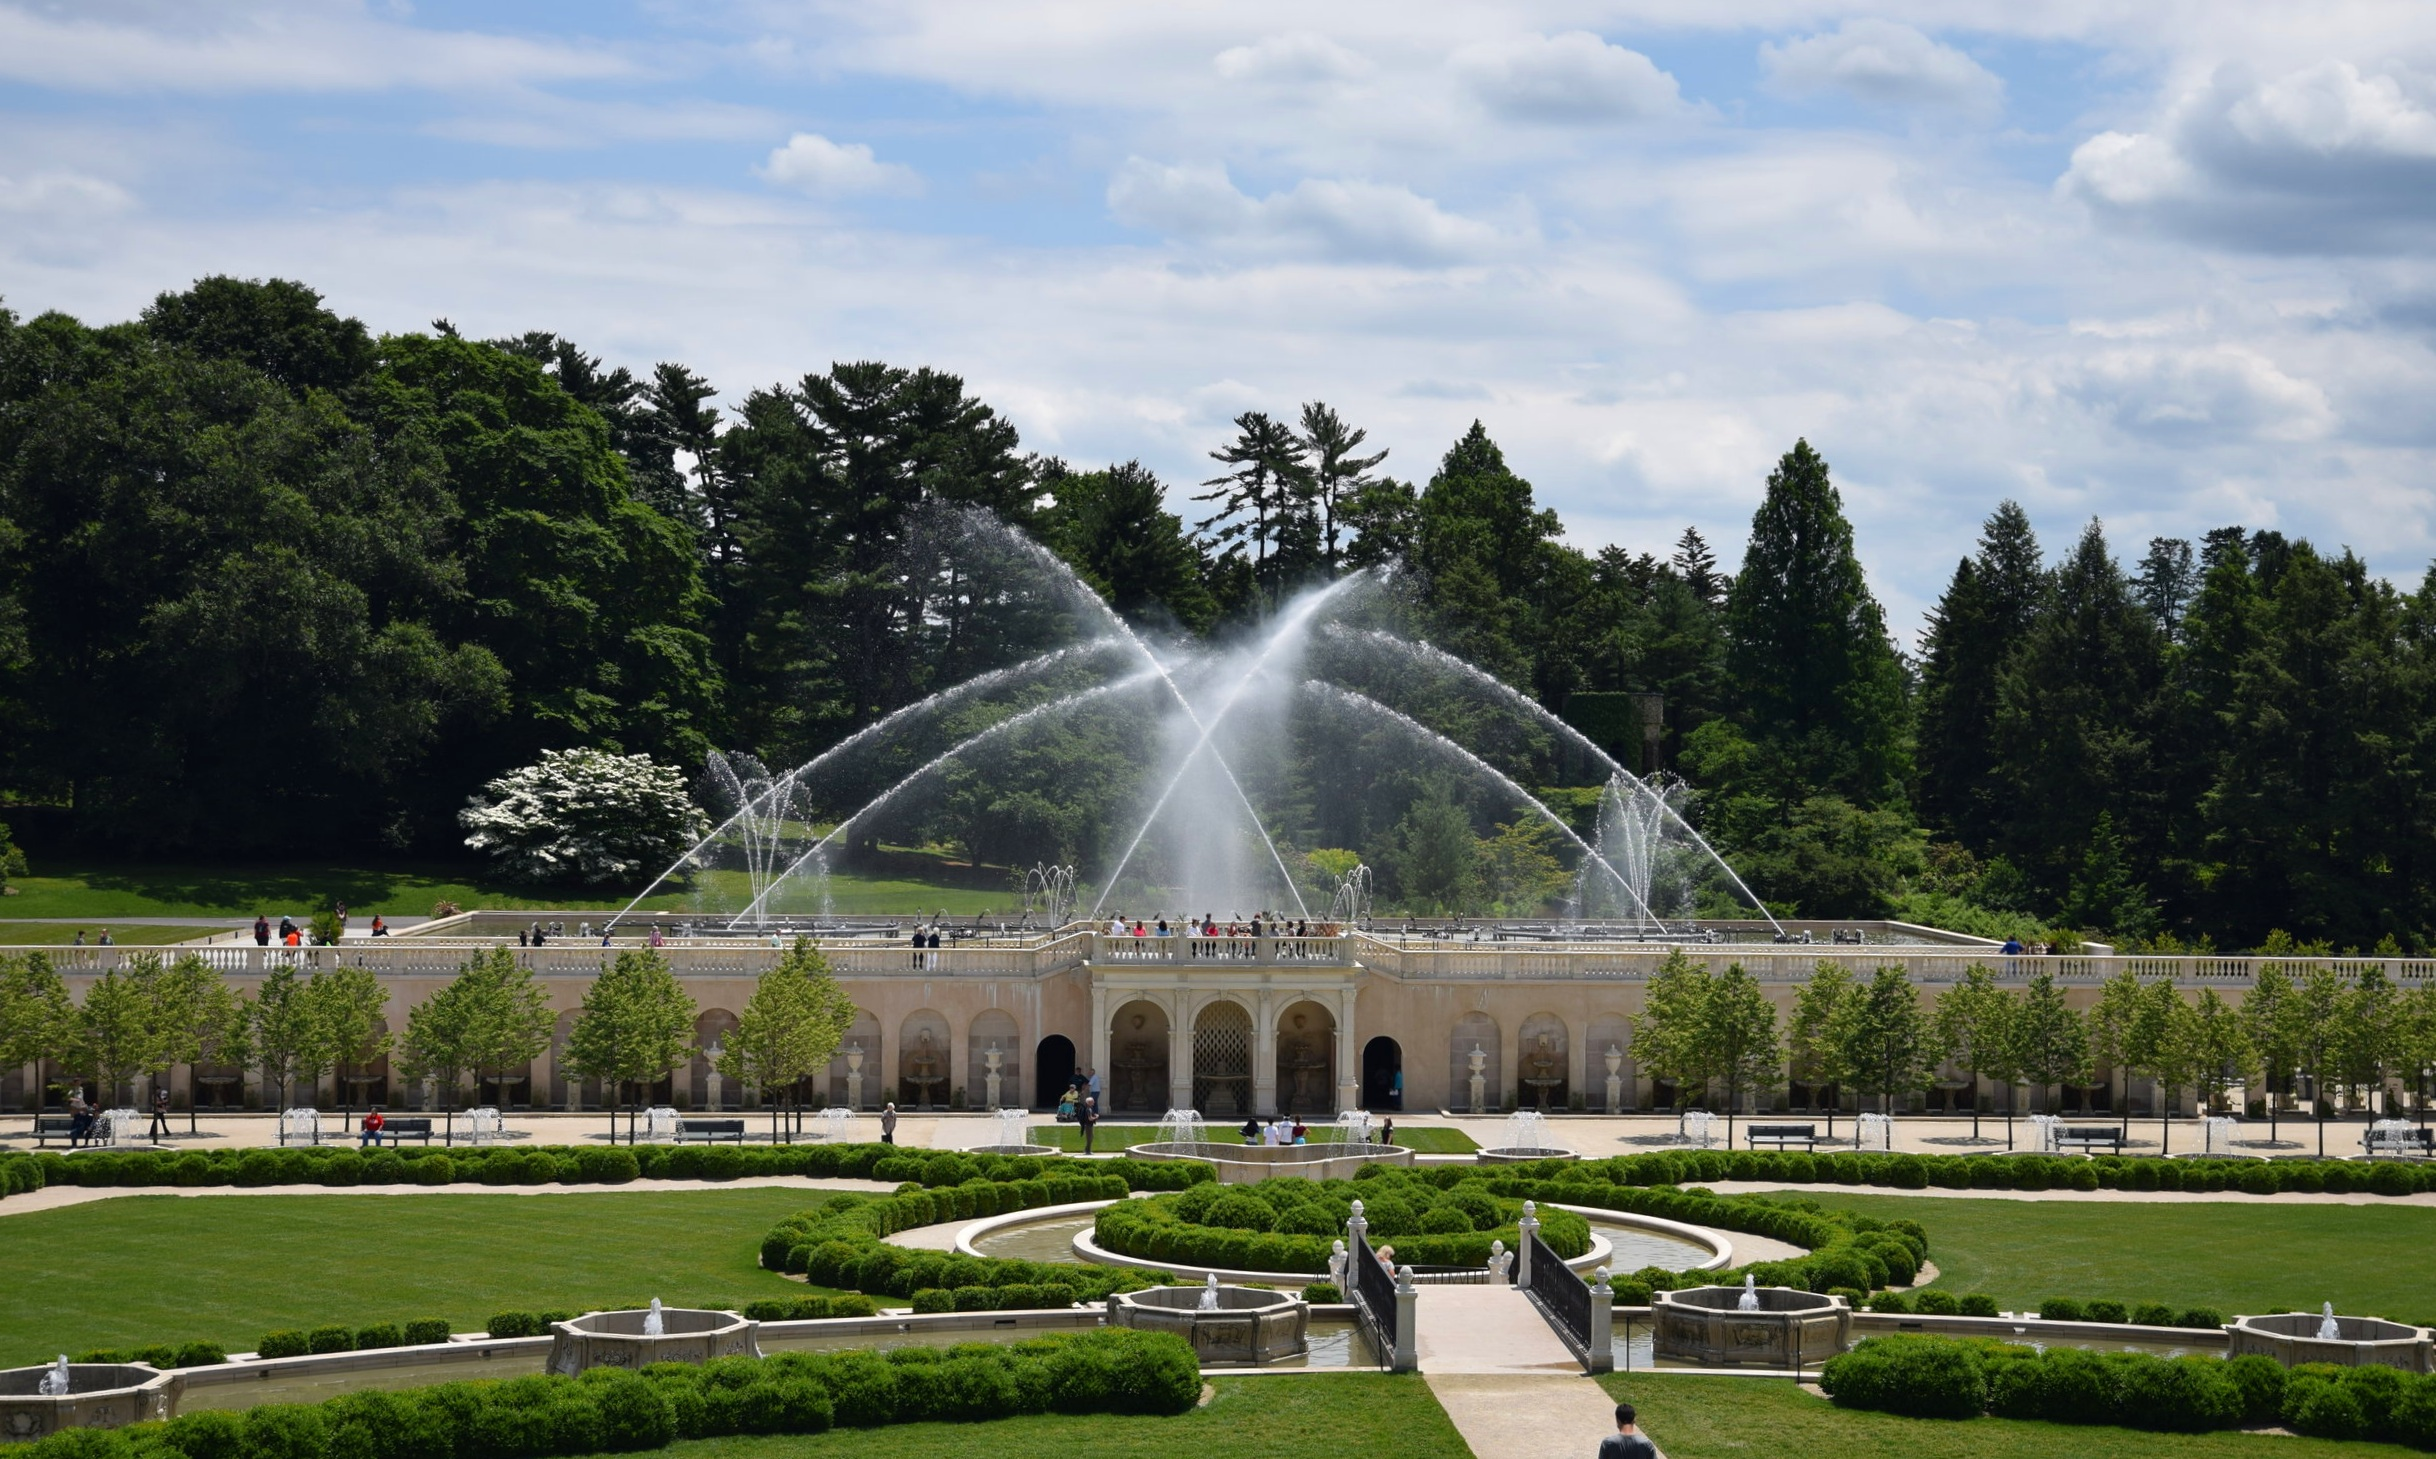 The Fountain at Longwood Gardens